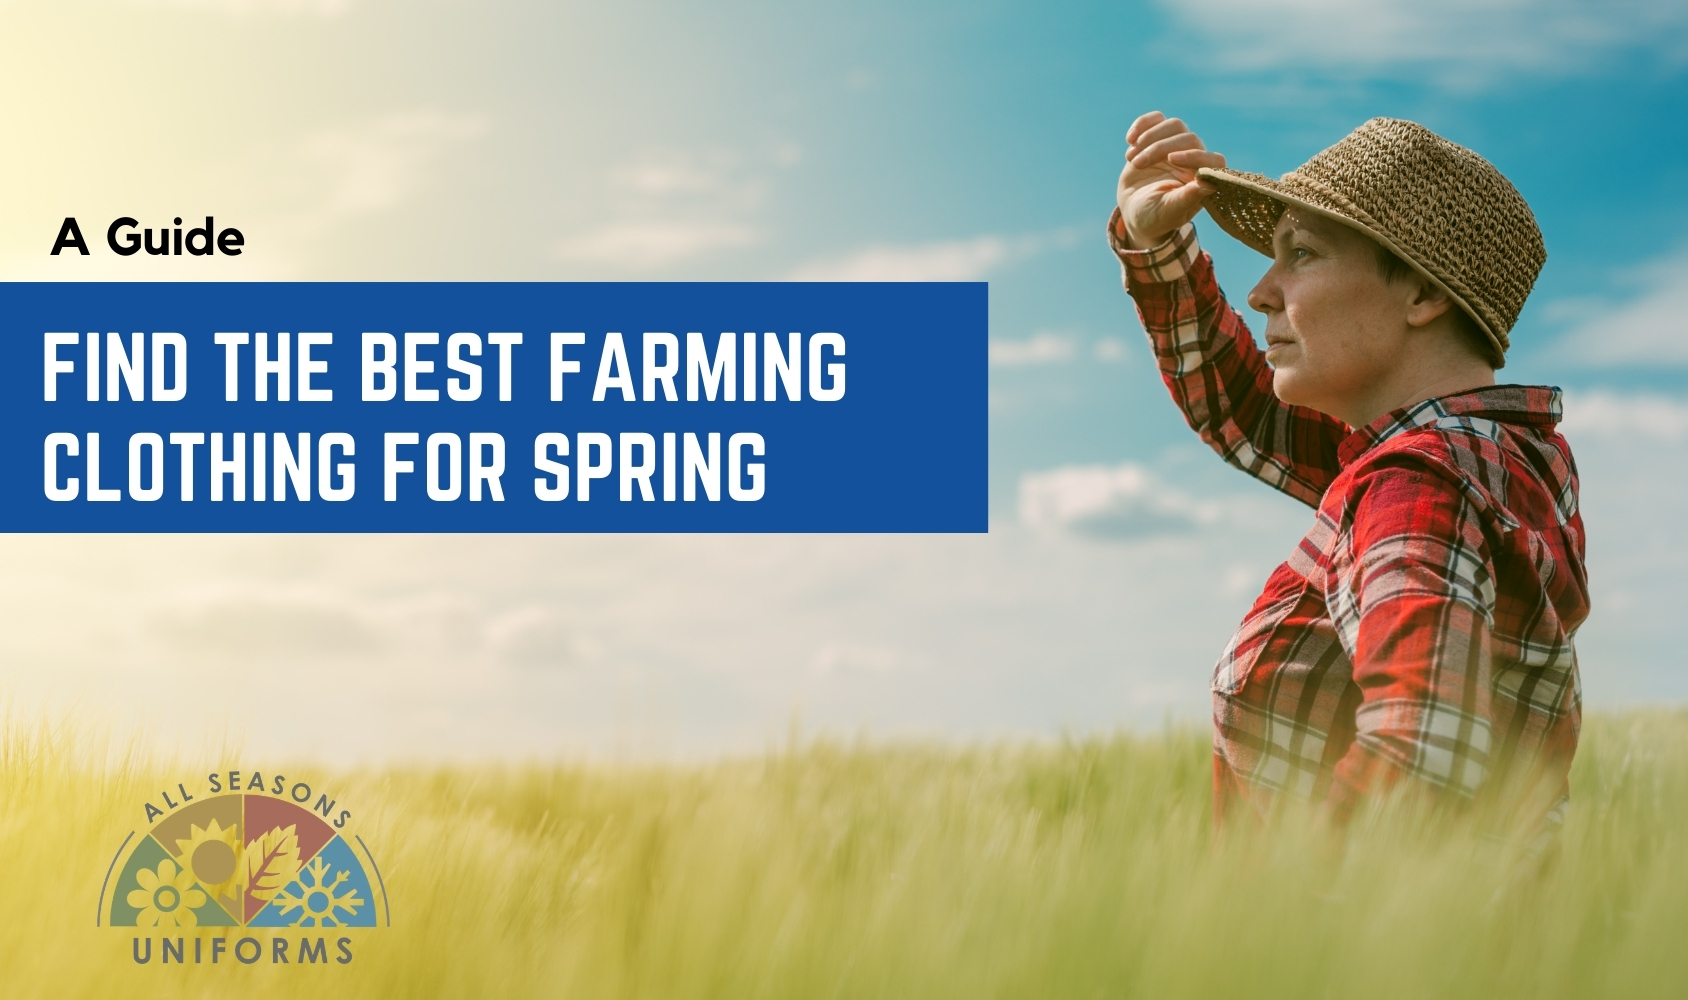 Find the Best Farming Clothing for Spring